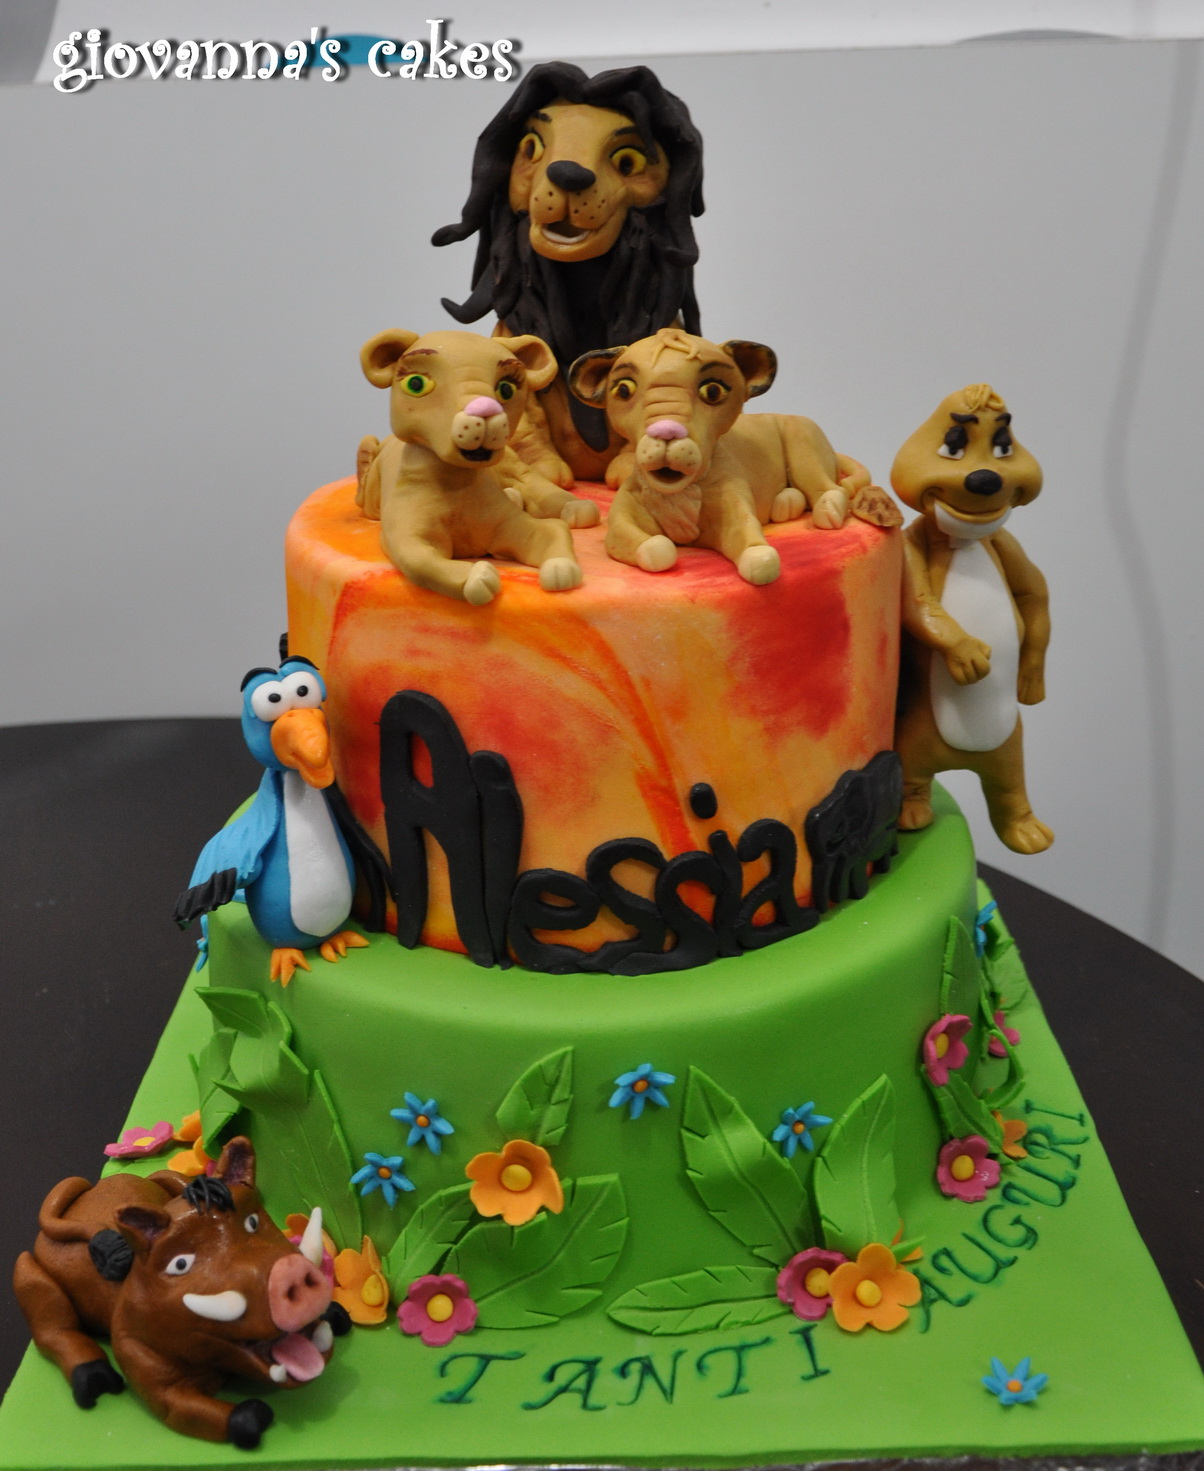 Lion King Cake Decorations Uk : Themed Bathroom Sets. Http Liezcakesandetc Blogspot Com ...